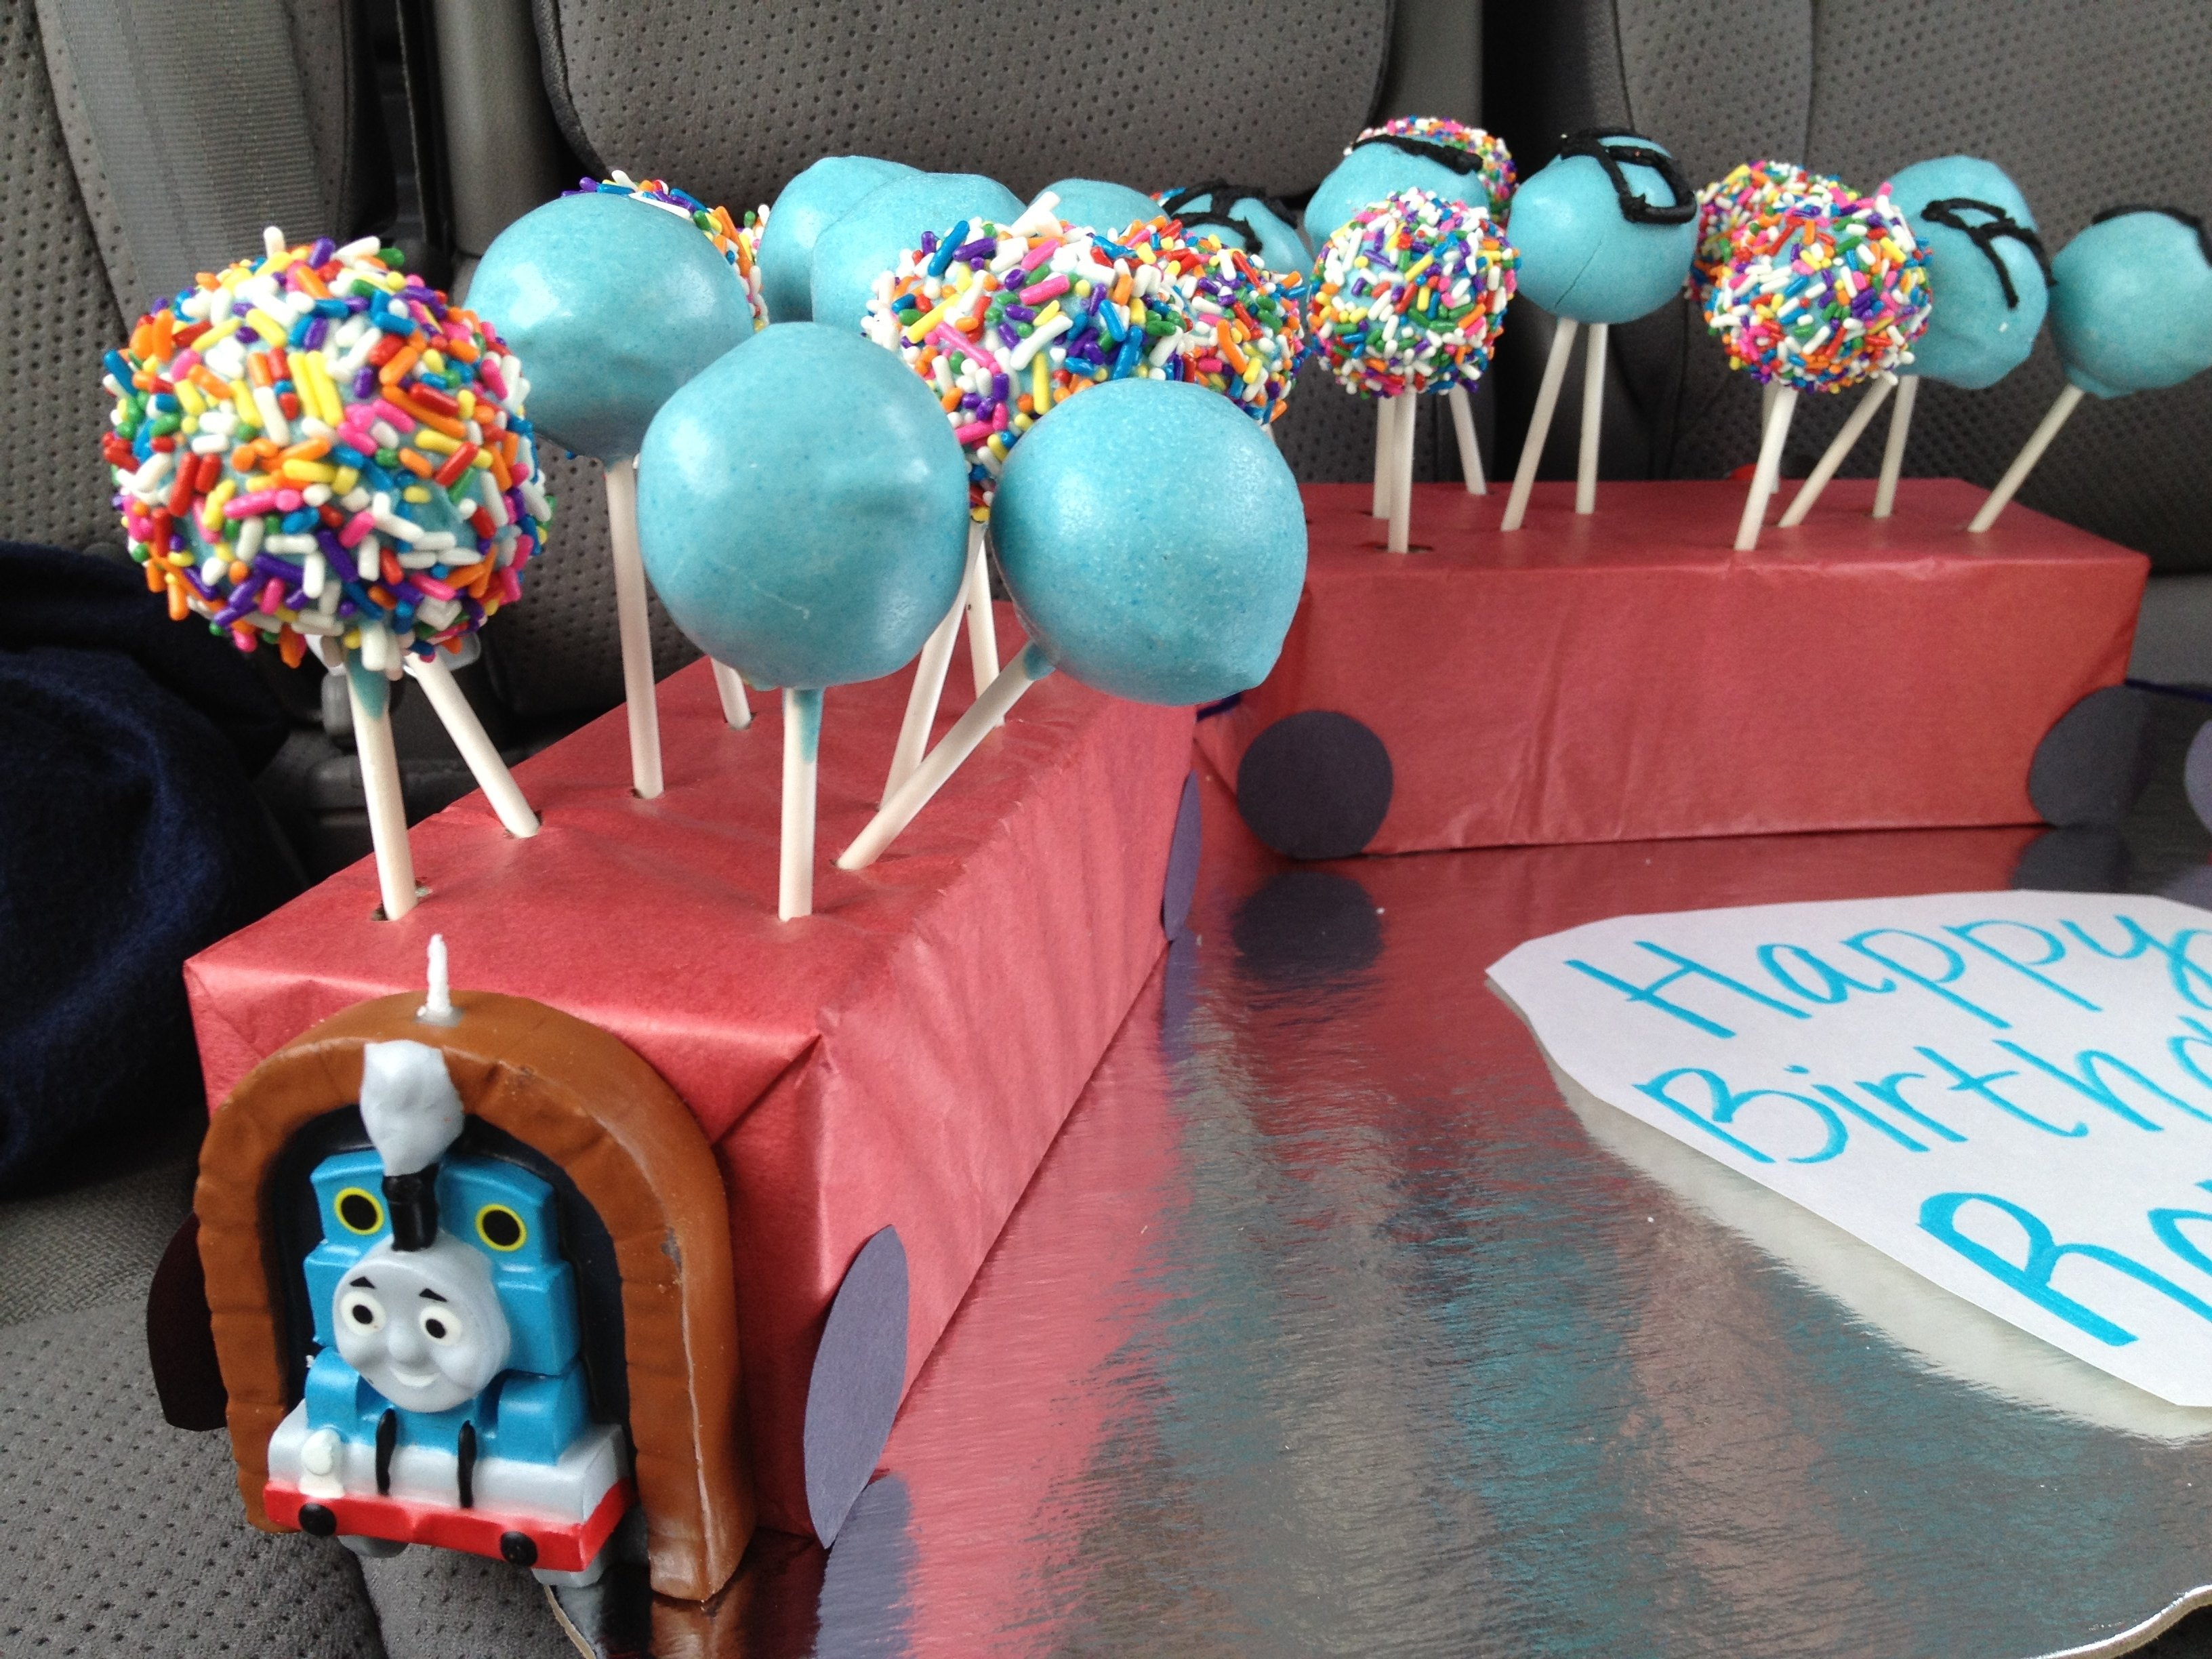 10 Nice Birthday Ideas For 4 Year Old Boy cake pops for 4 year old boys birthday favorite recipes 2 2021